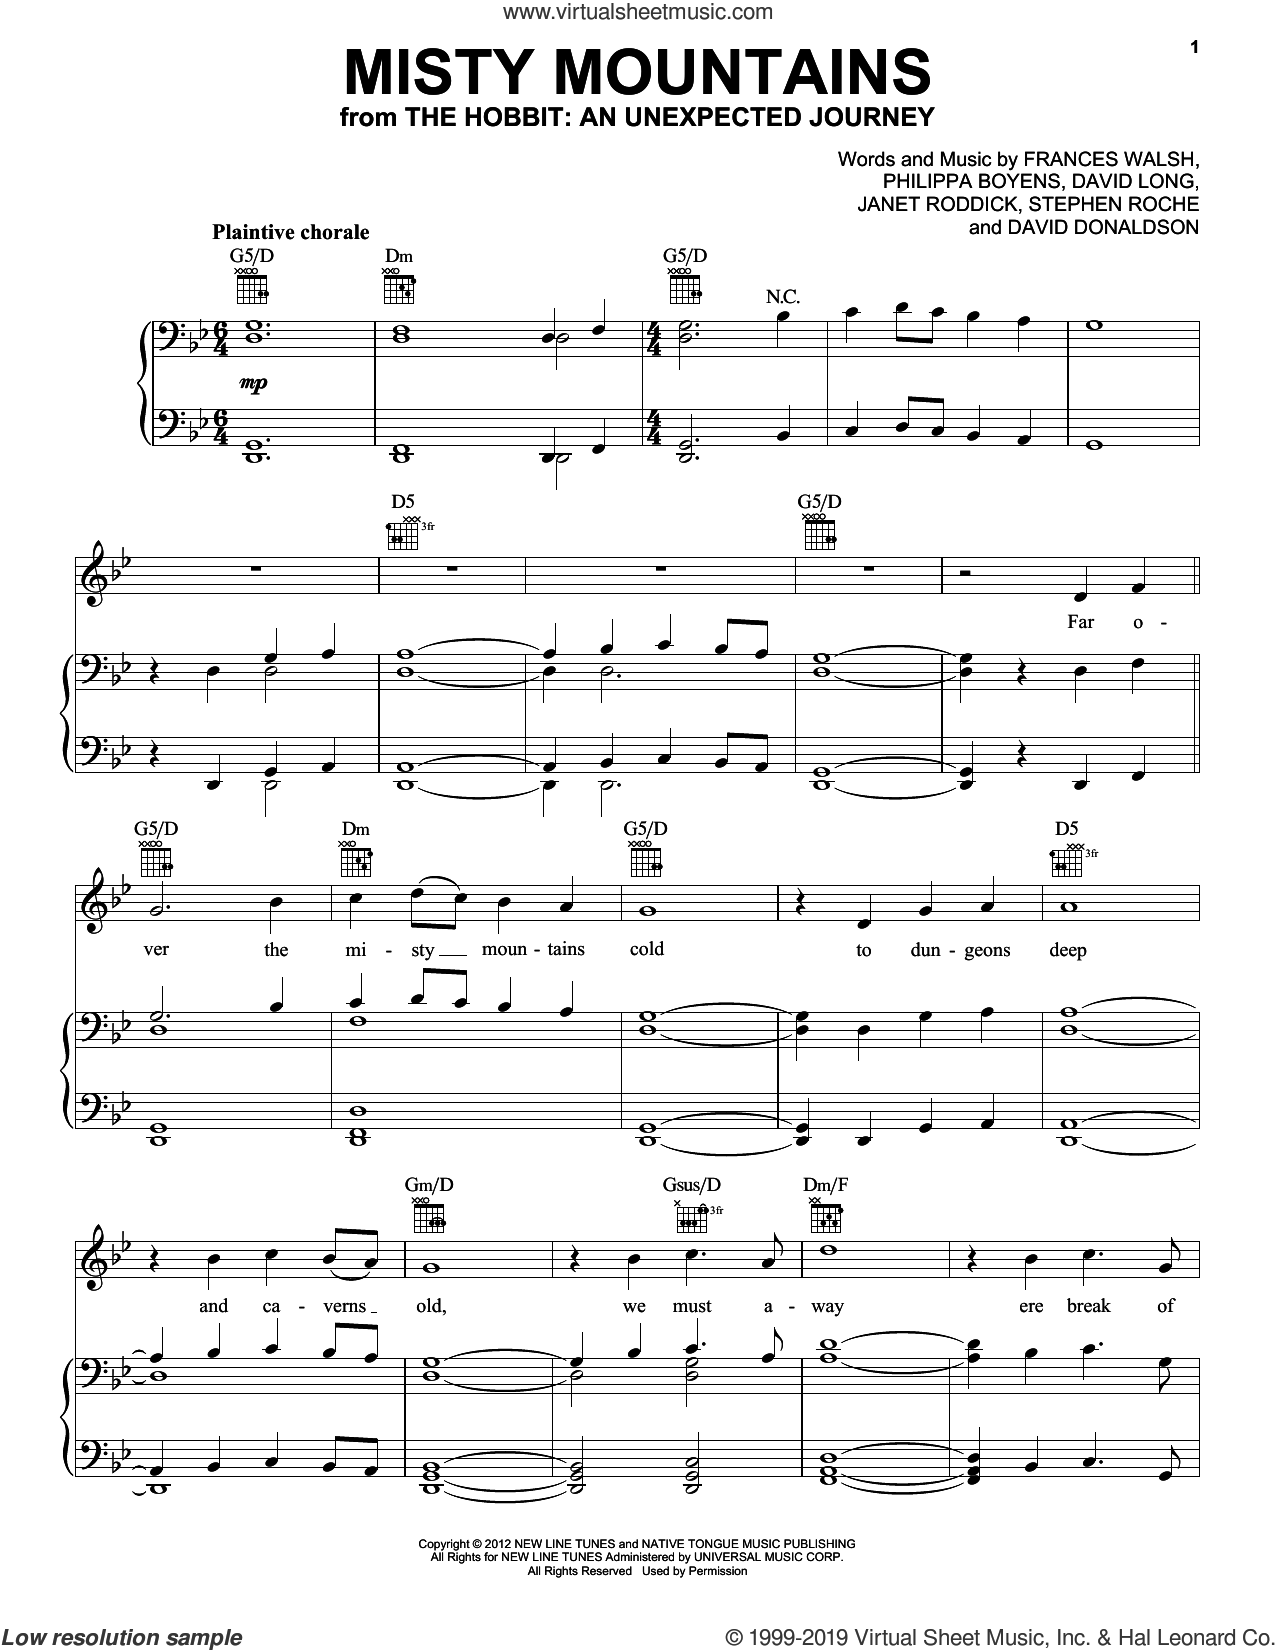 Misty Mountains (from The Hobbit: An Unexpected Journey) sheet music for voice, piano or guitar by Howard Shore, David Donaldson, Fran Walsh, Janet Roddick, Philippa Jane Boyens and Stephen Roche, classical score, intermediate skill level